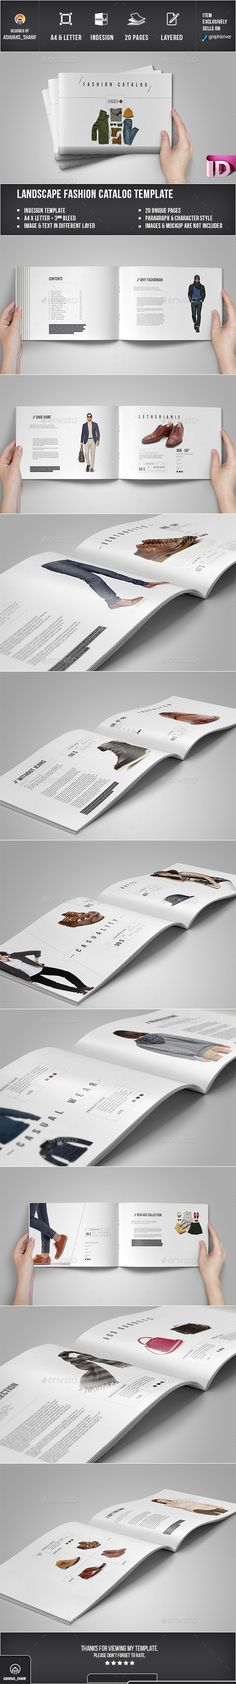 Product Catalog Design Idea - Catalog Brochure Template InDesign INDD. Download here: http://graphicriver.net/item/product-catalog/16492297?s_rank=113&ref=yinkira